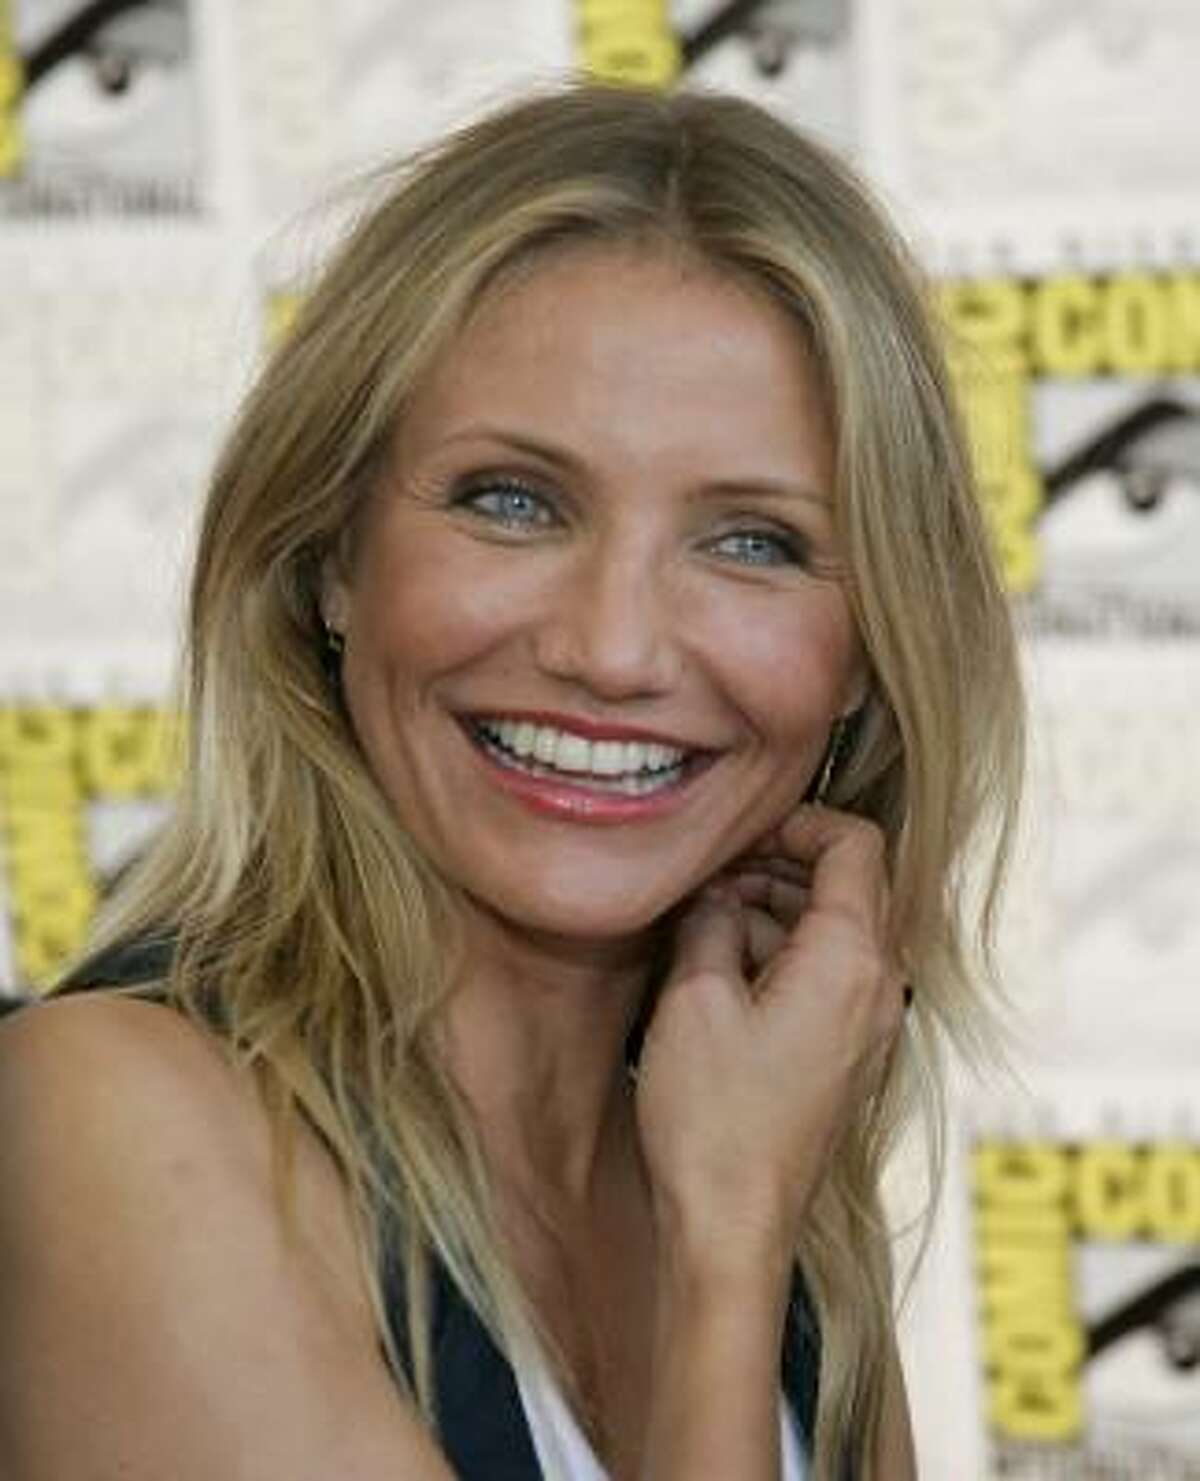 Cameron Diaz embraces her hair type and let's it flow freely.